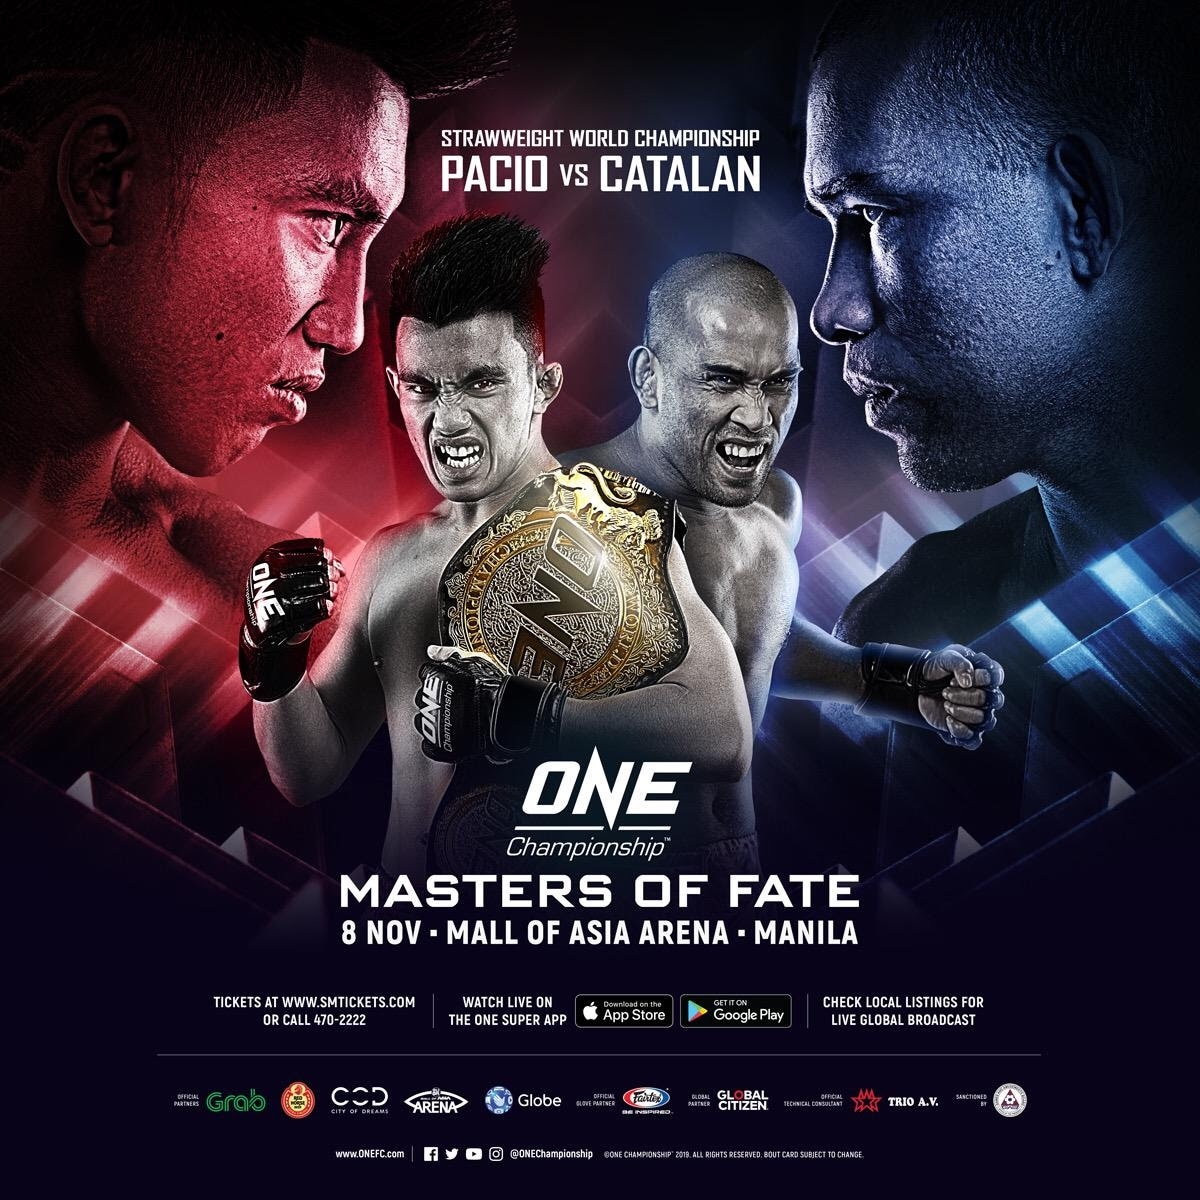 ONE Masters of Fate will hold the first ever All Filipino world title match in MMA history